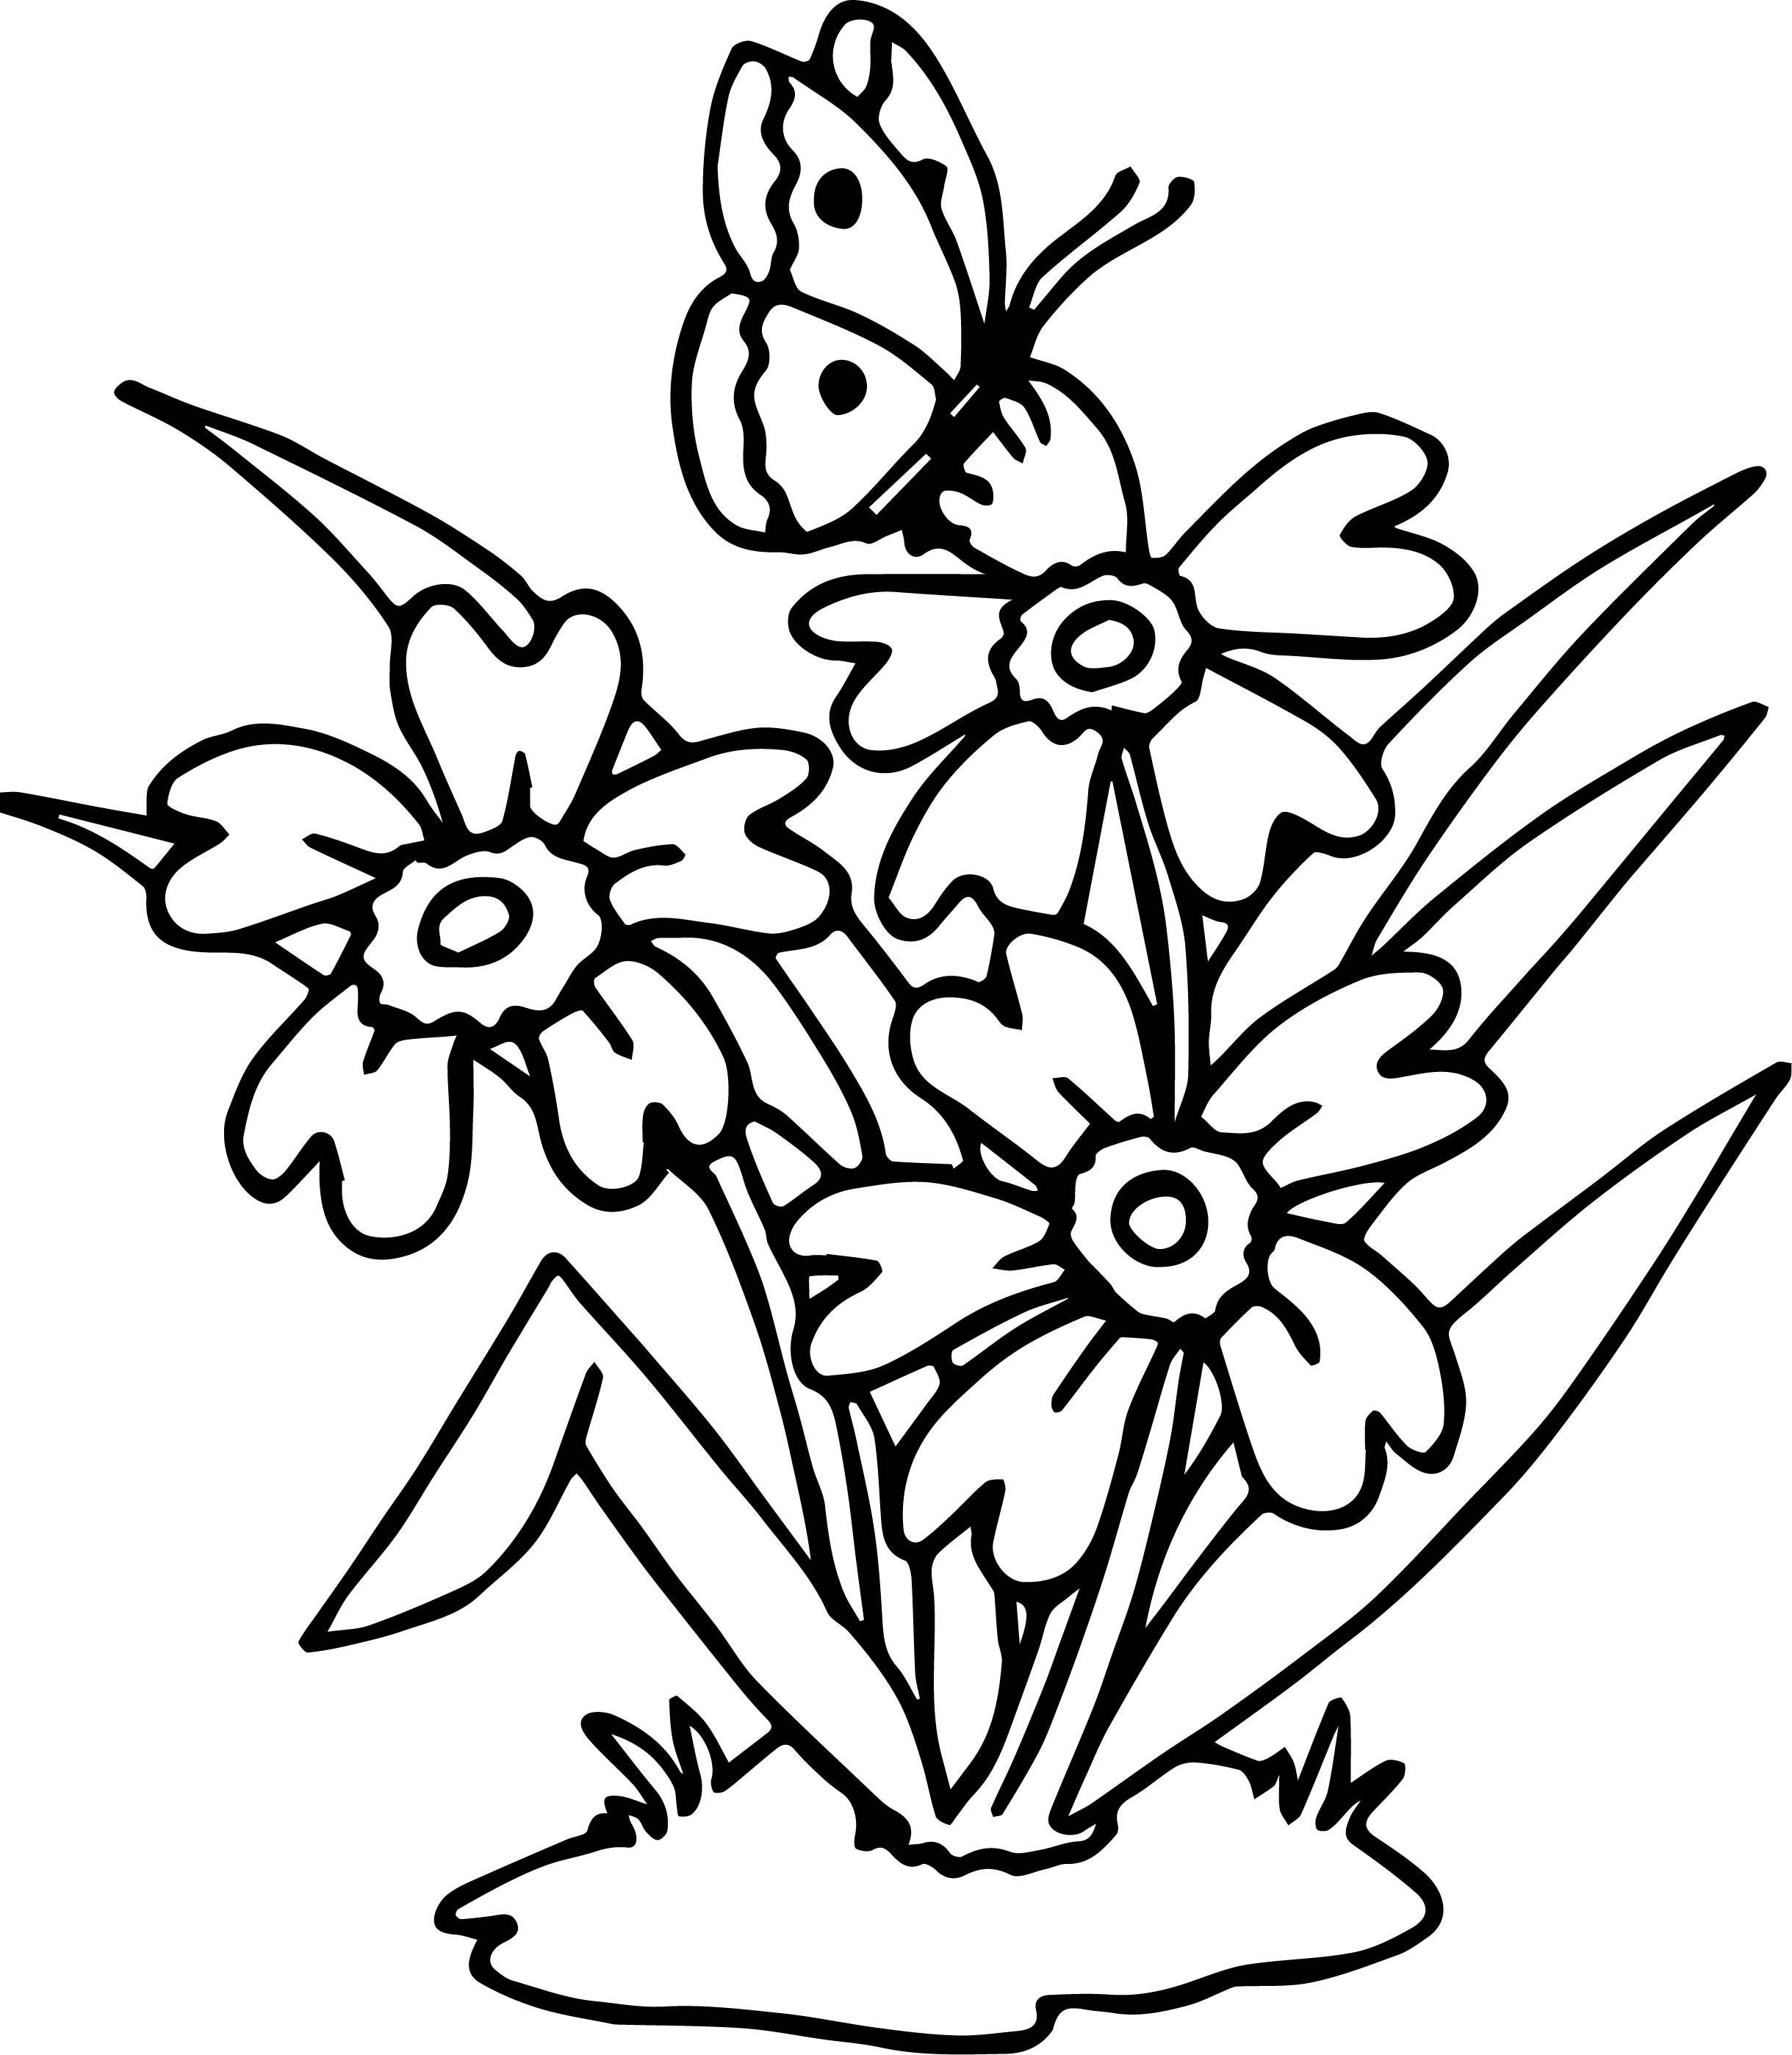 Flowers Butterfly Coloring Page | Wecoloringpage